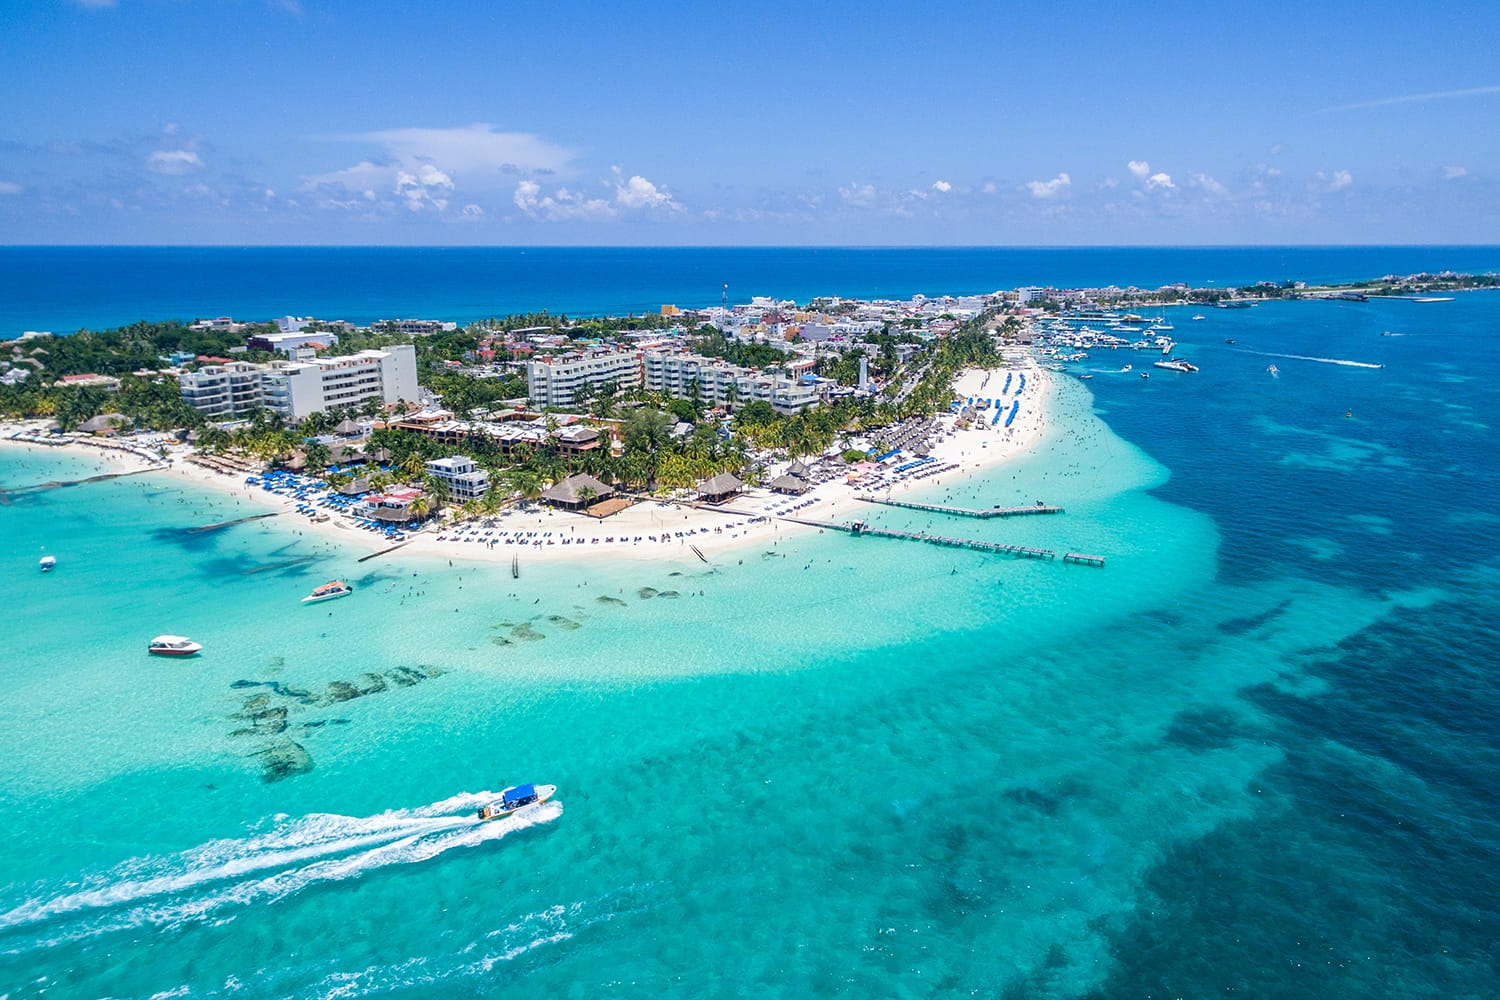 Aerial shot of Playa Norte at Isla Mujeres, island located near Cancun, Mexico